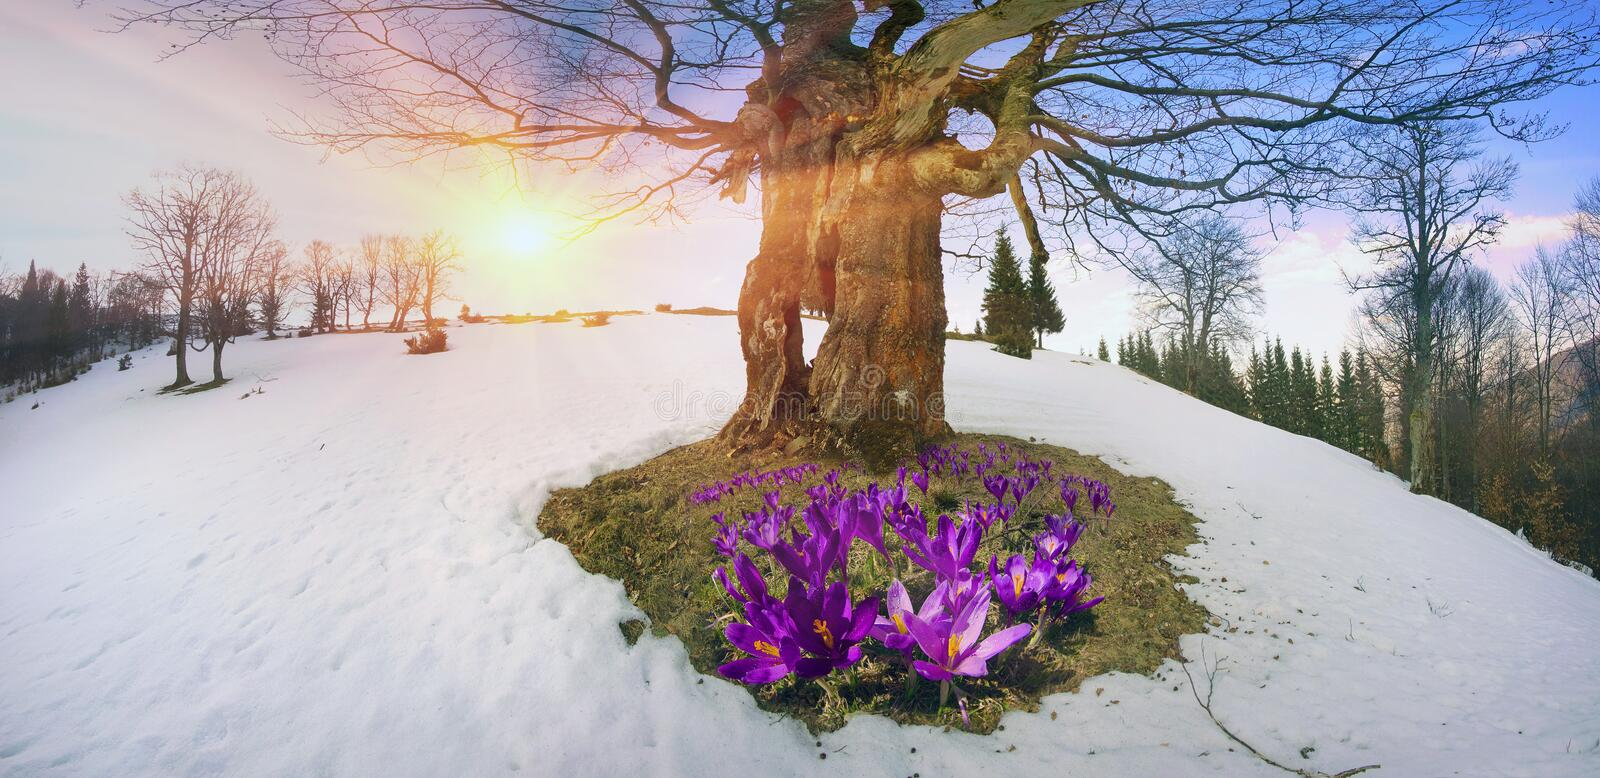 Snow flowers - Crocuses stock image. Image of background ...